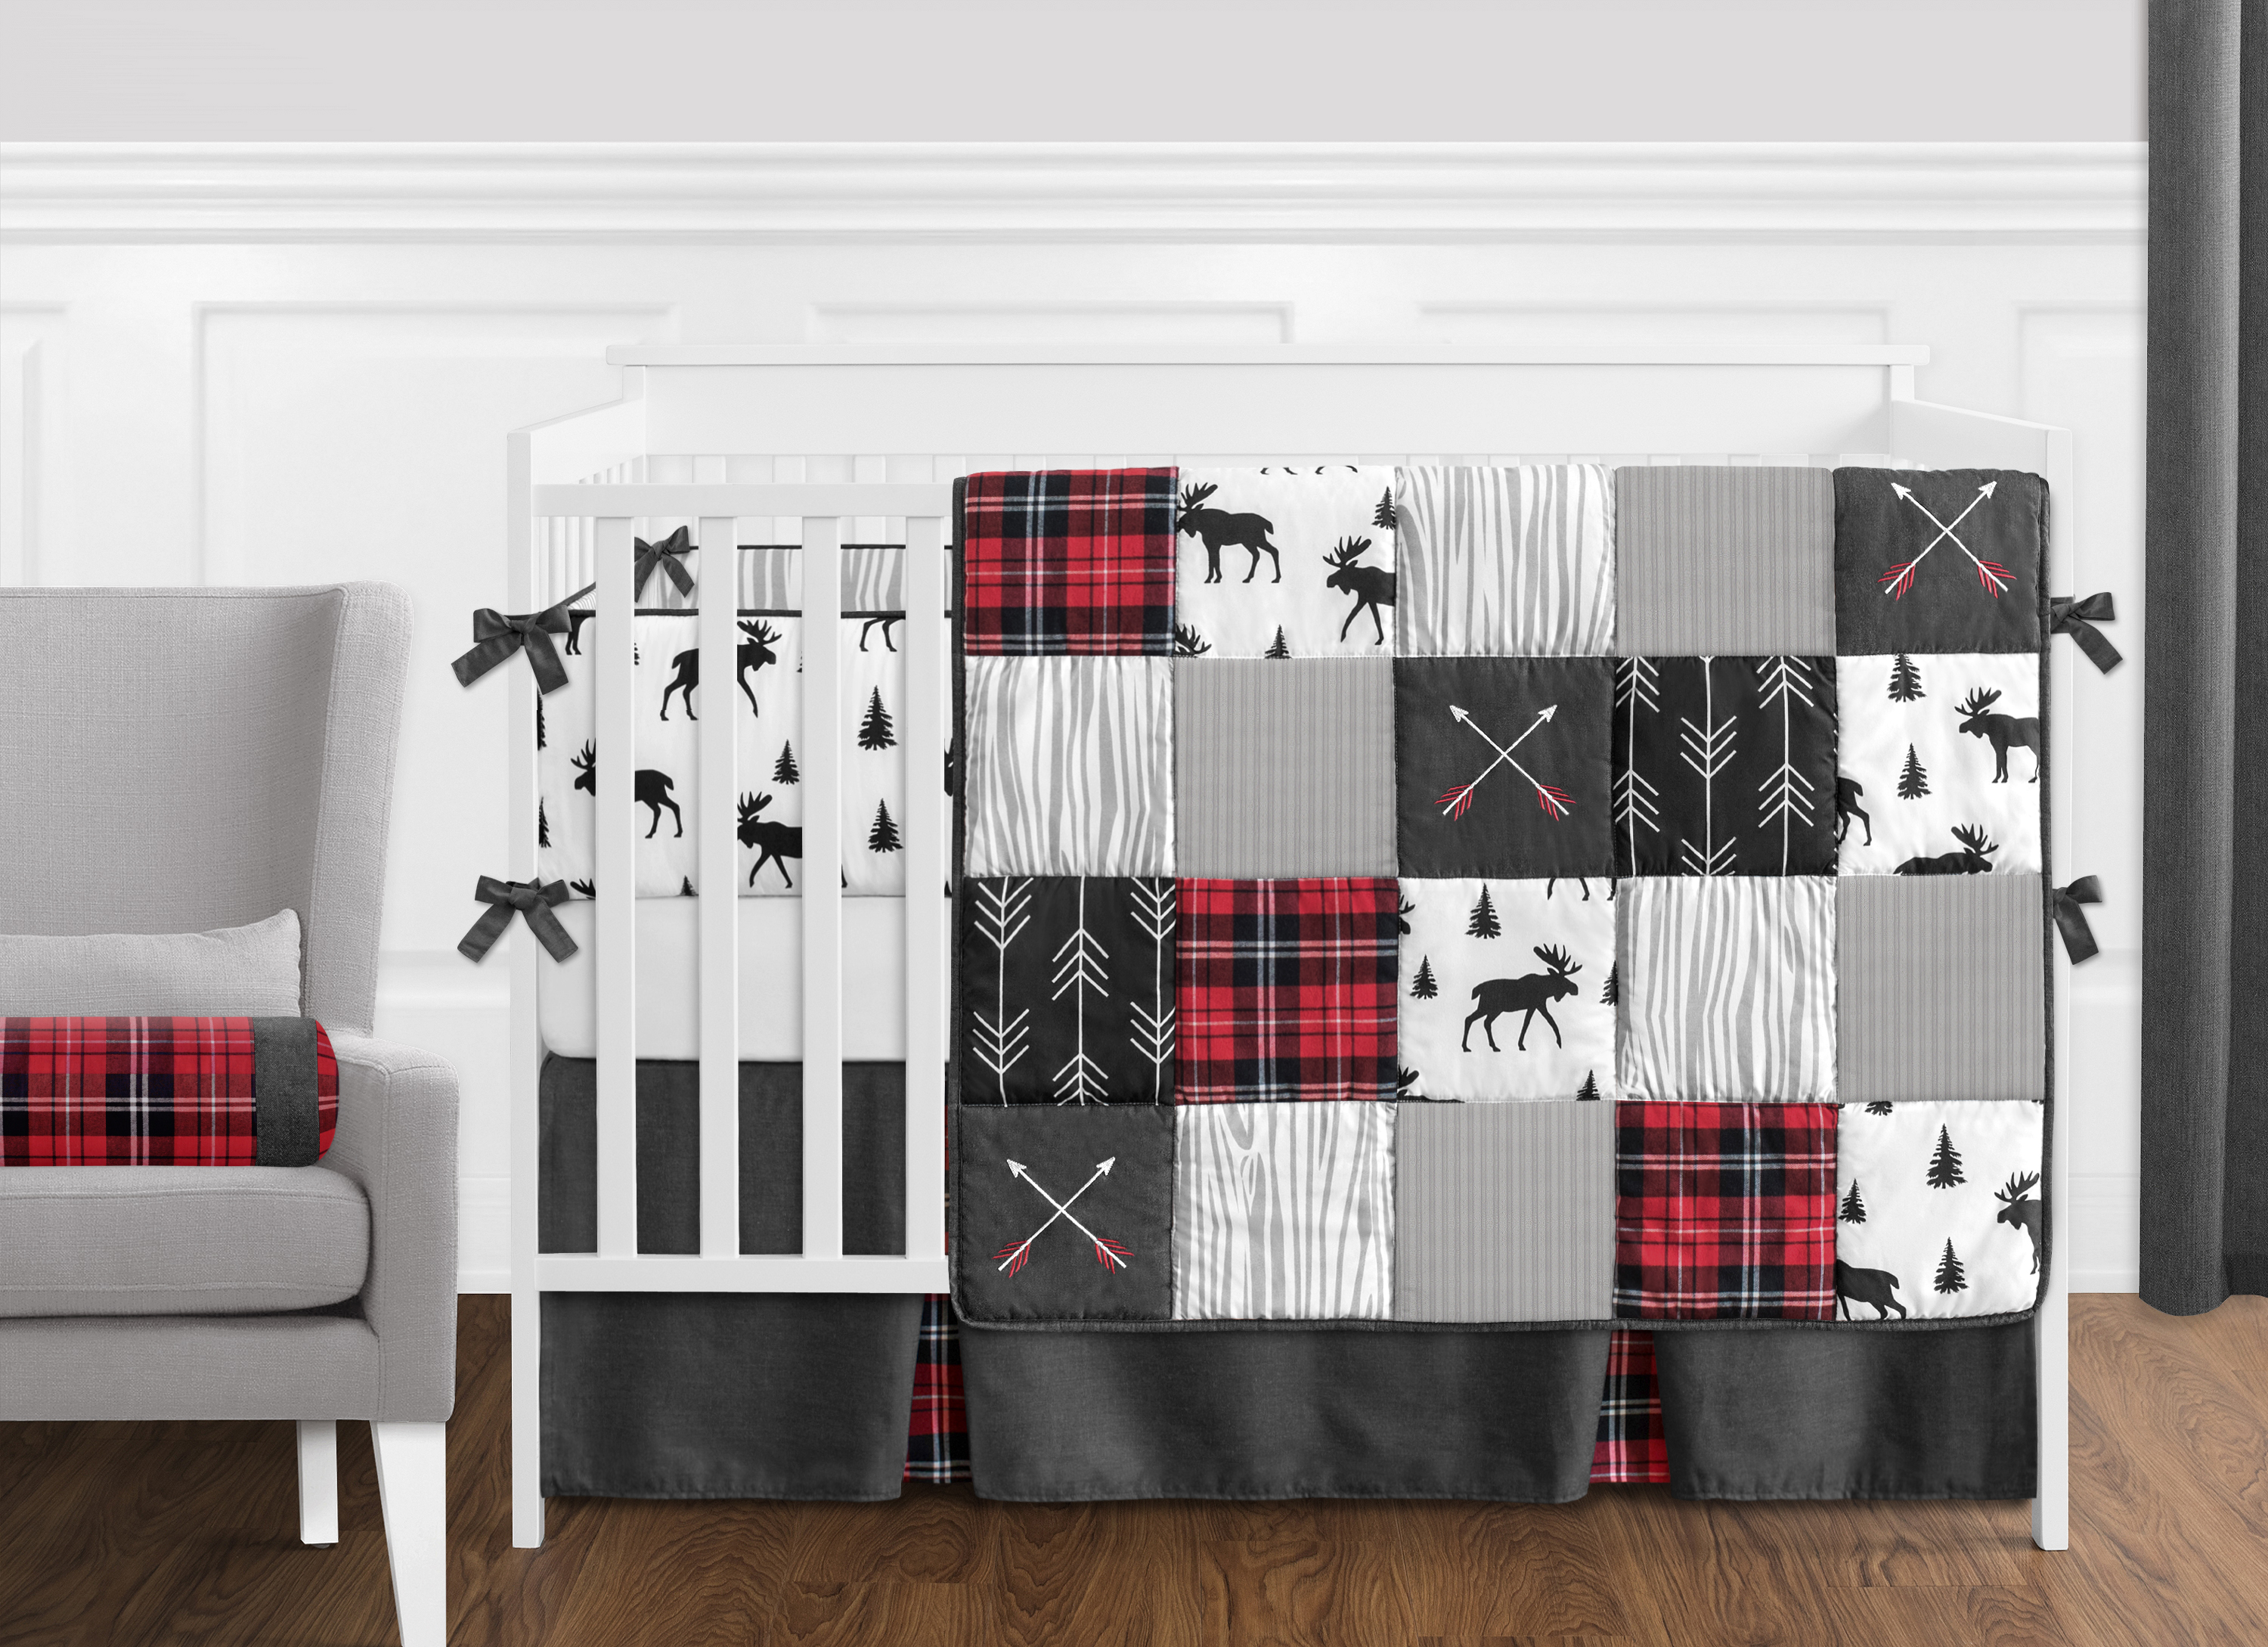 Sweet Jojo Designs Musical Baby Crib Mobile for Navy Blue and Gray Plaid Collection